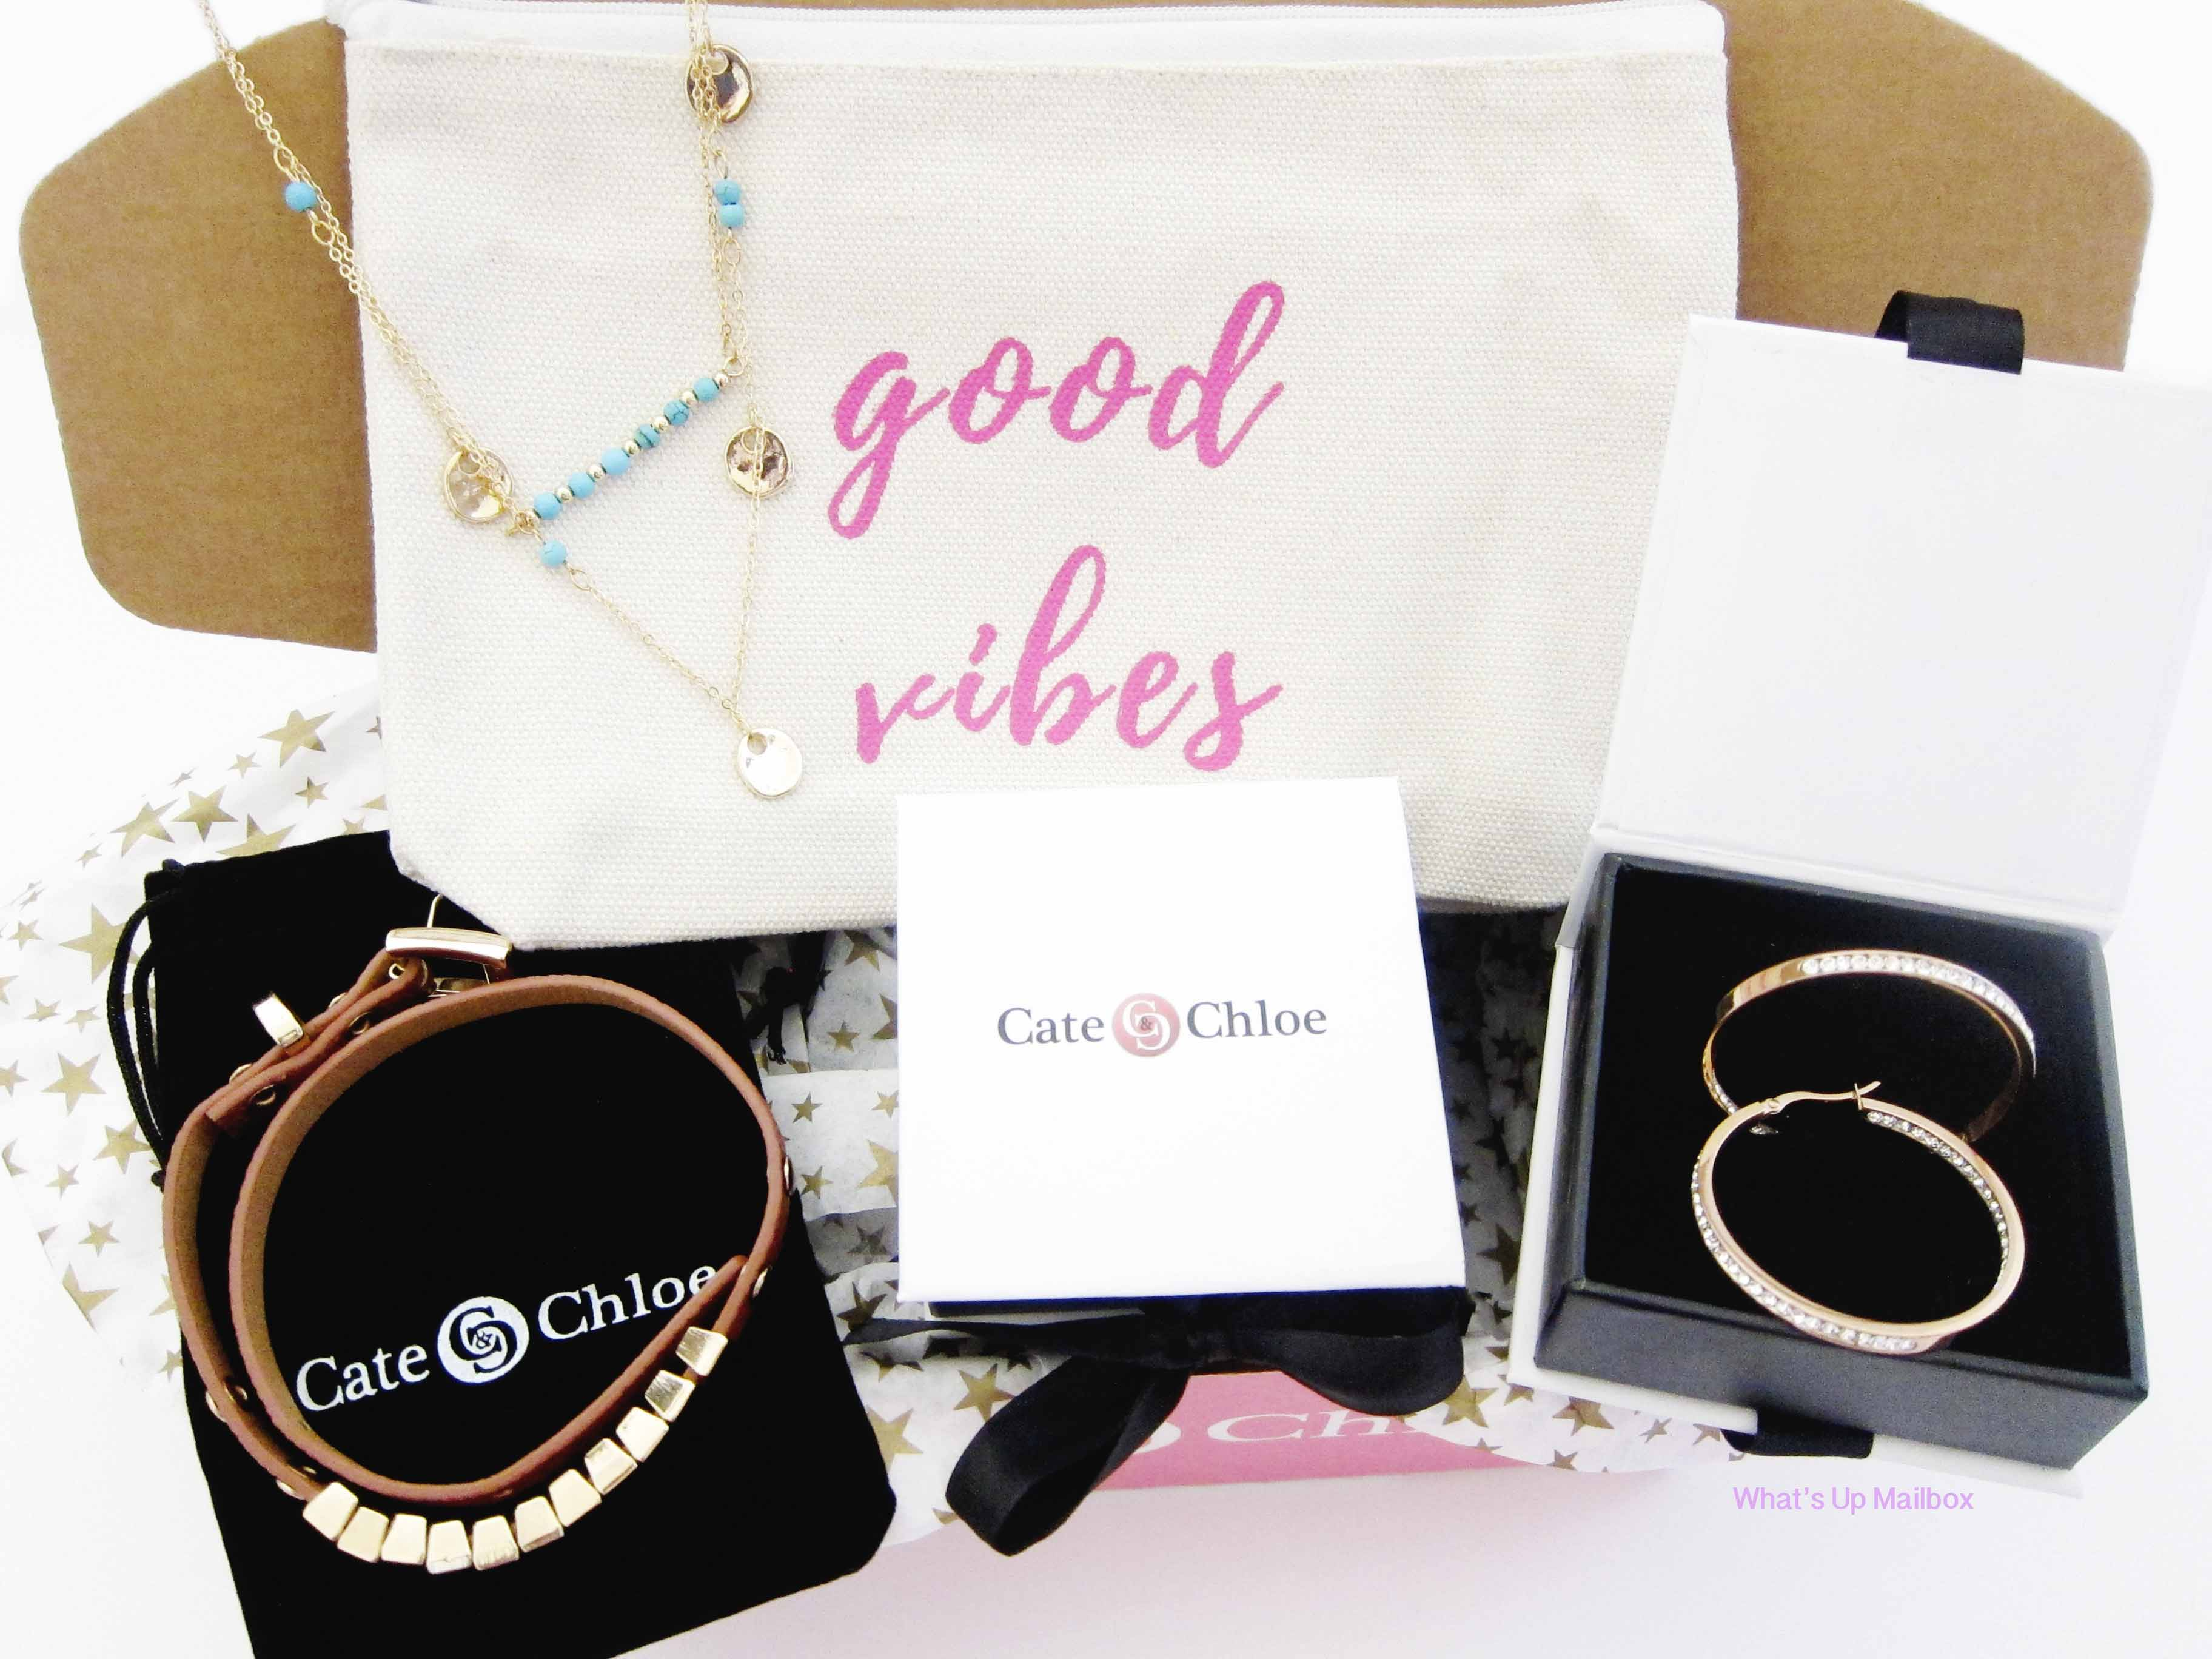 Cate & Chloe VIP Box July 2016 Review + Coupon!